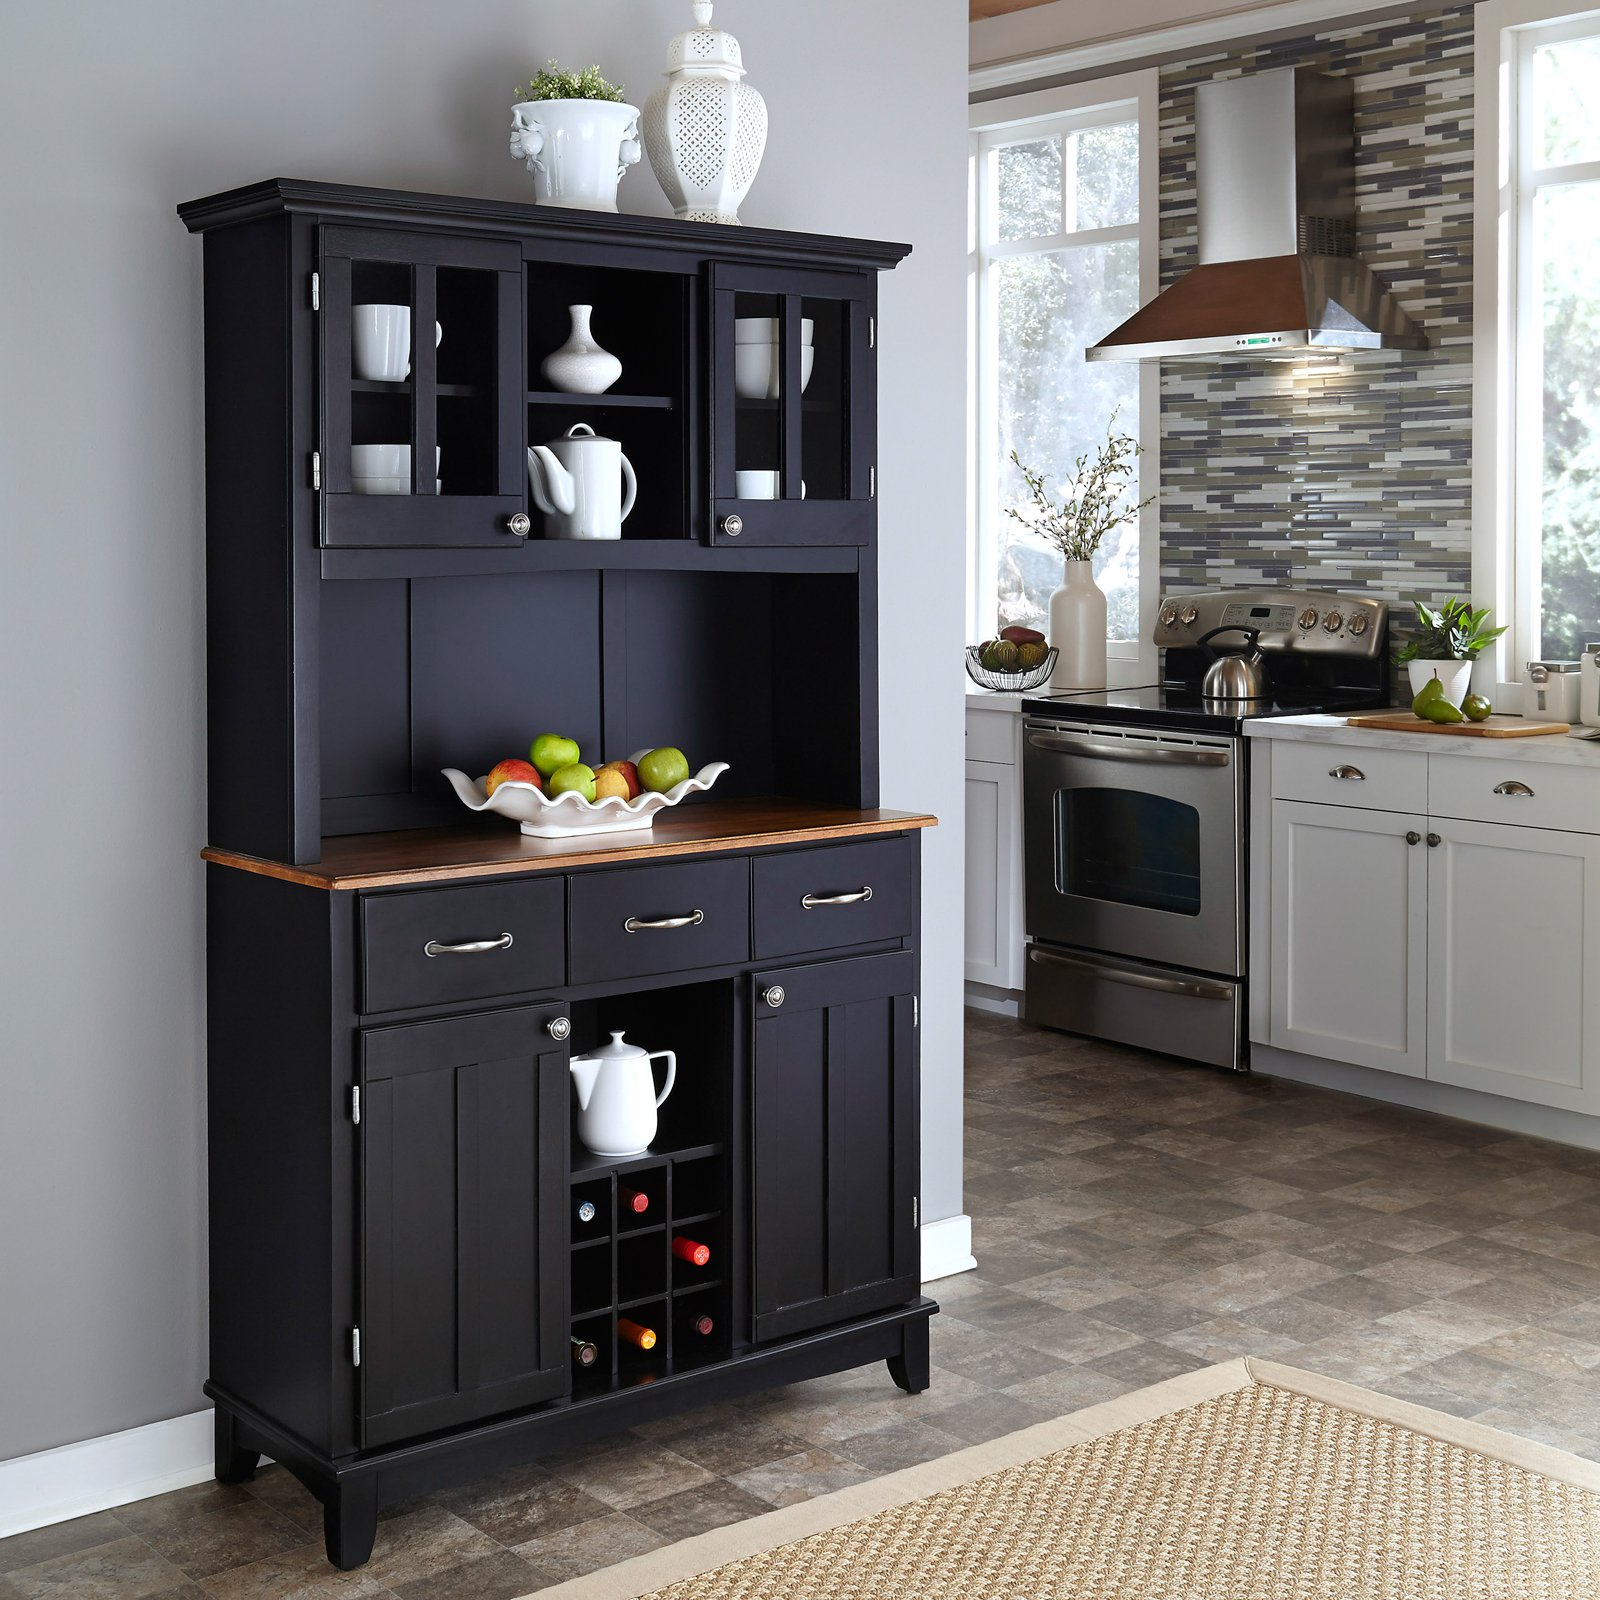 Merveilleux Black Wooden Baker Rack With Drawers And Cabinet Inside Kitchen White Set  Natural Rug